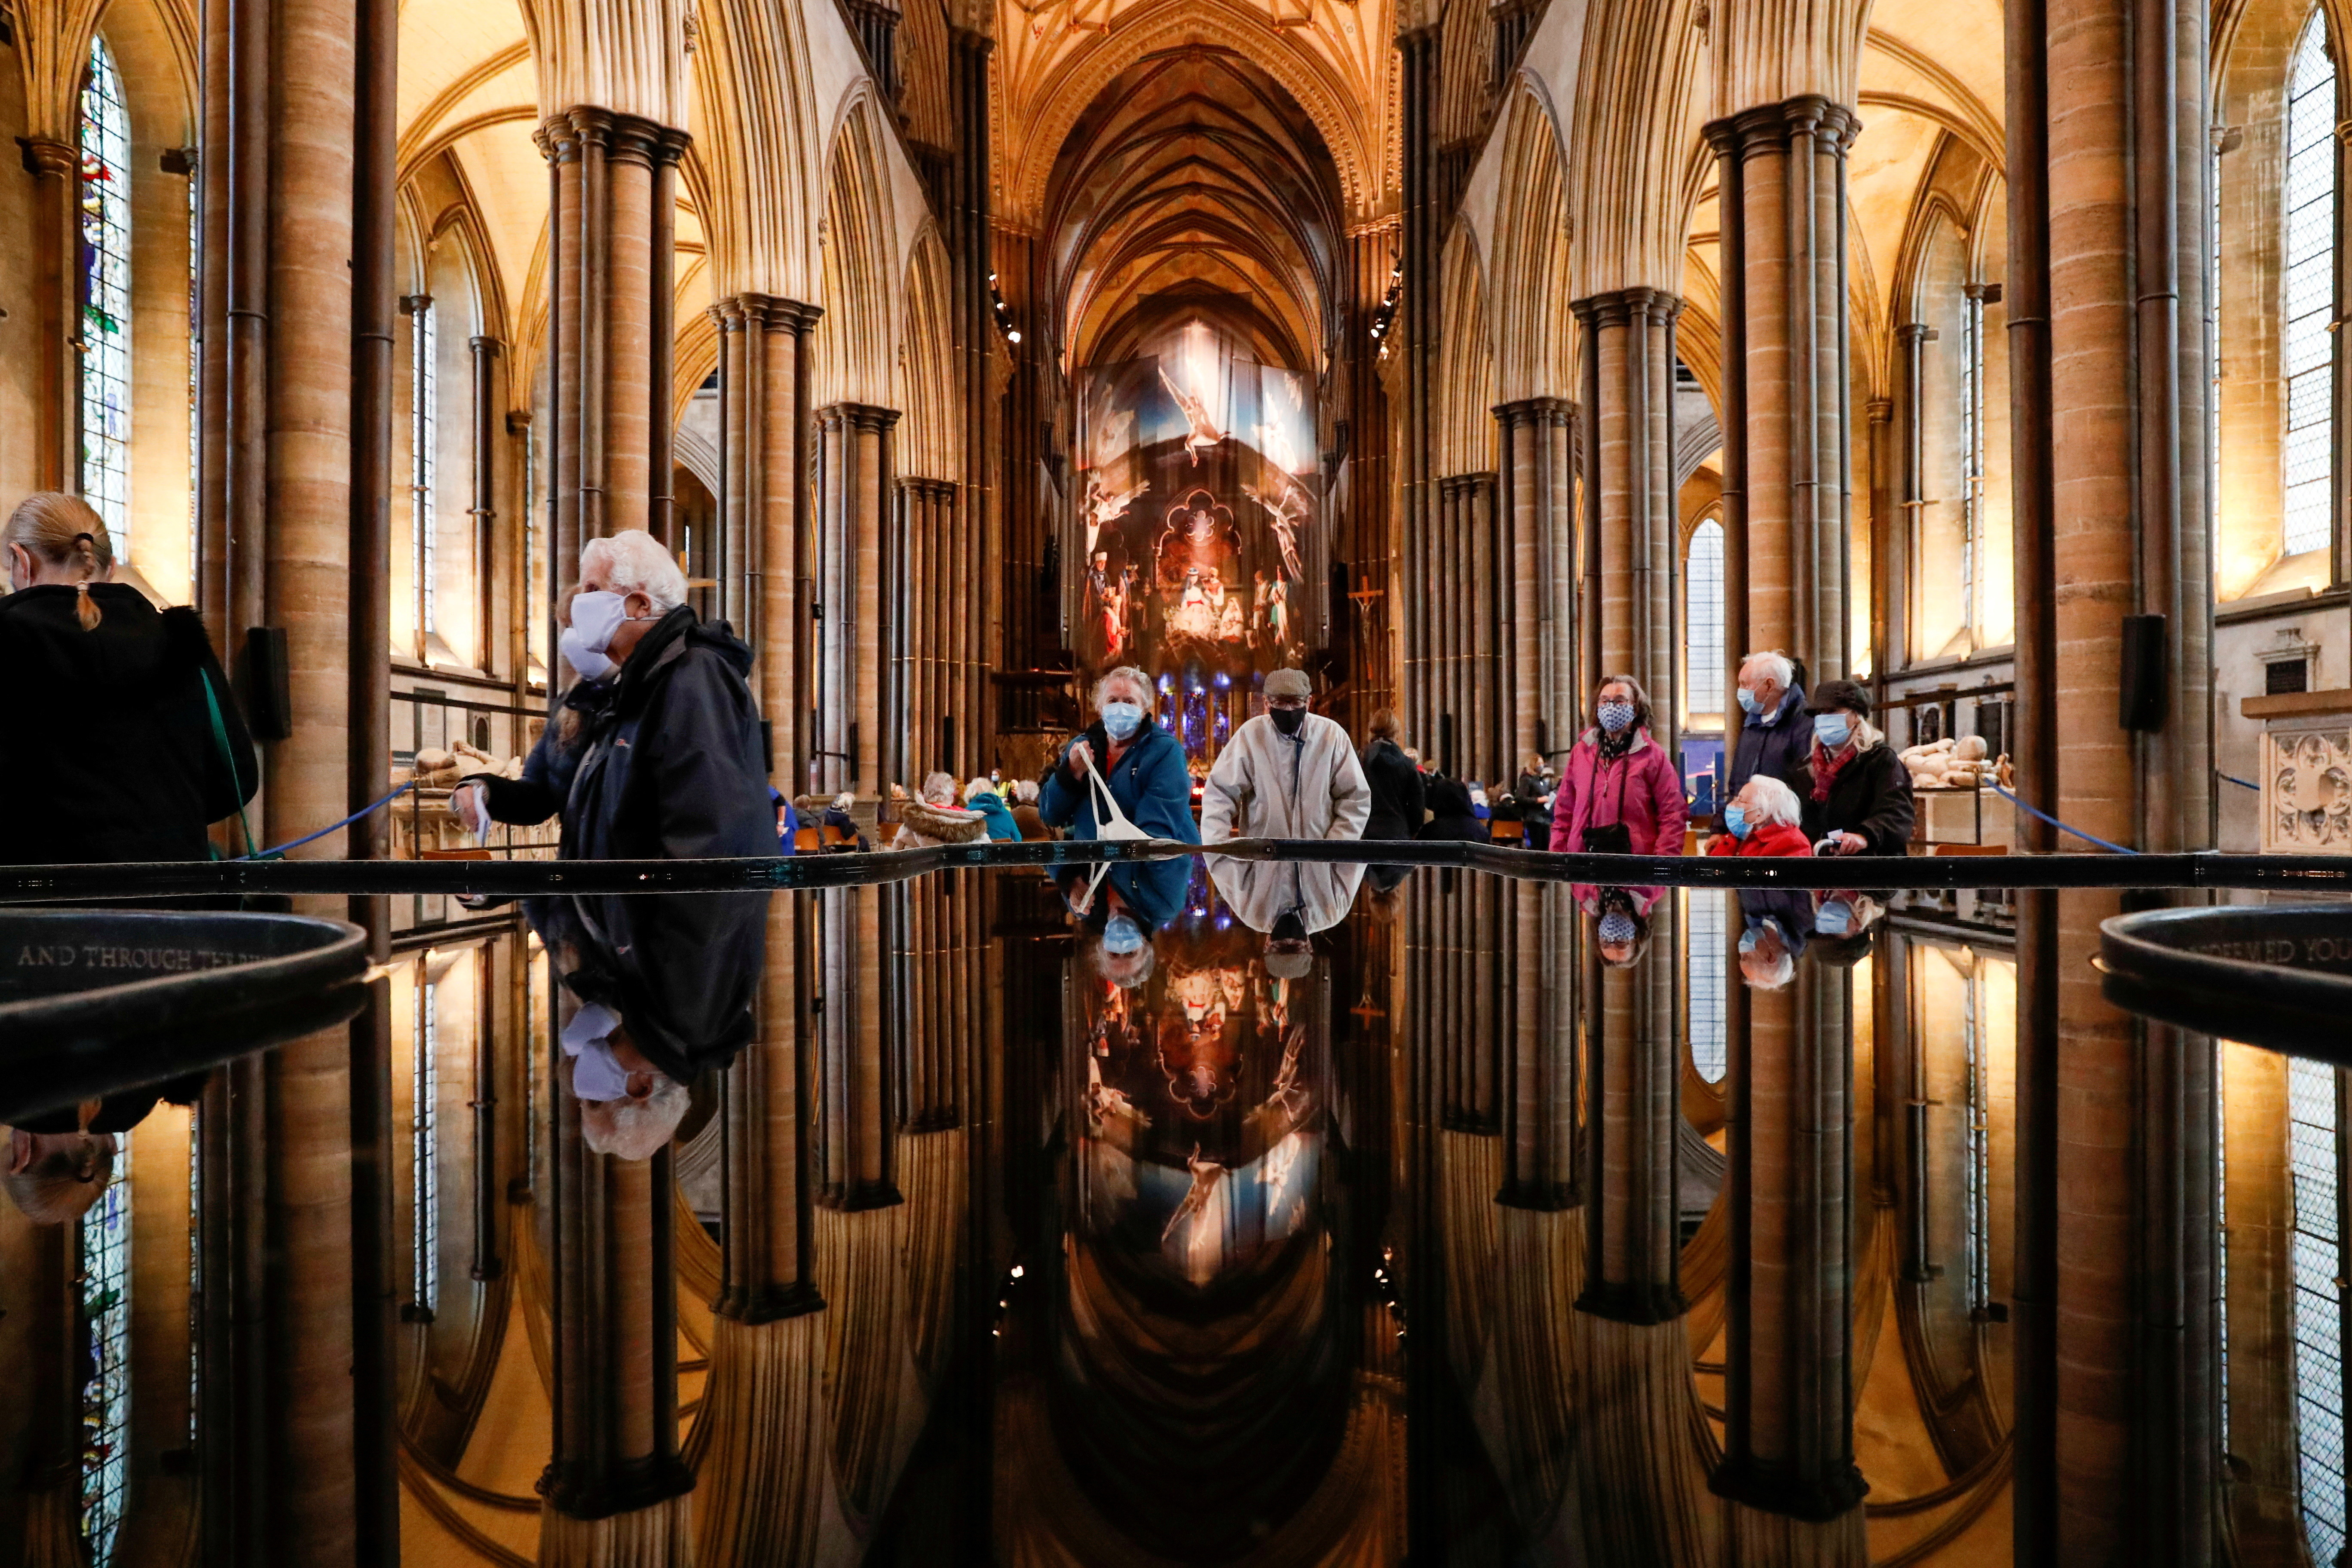 People wait to receive the coronavirus disease (COVID-19) vaccine at a vaccination centre inside the Salisbury Cathedral, in Salisbury, Britain January 20, 2021. REUTERS/Paul Childs     TPX IMAGES OF THE DAY - RC2MBL9VVKVM